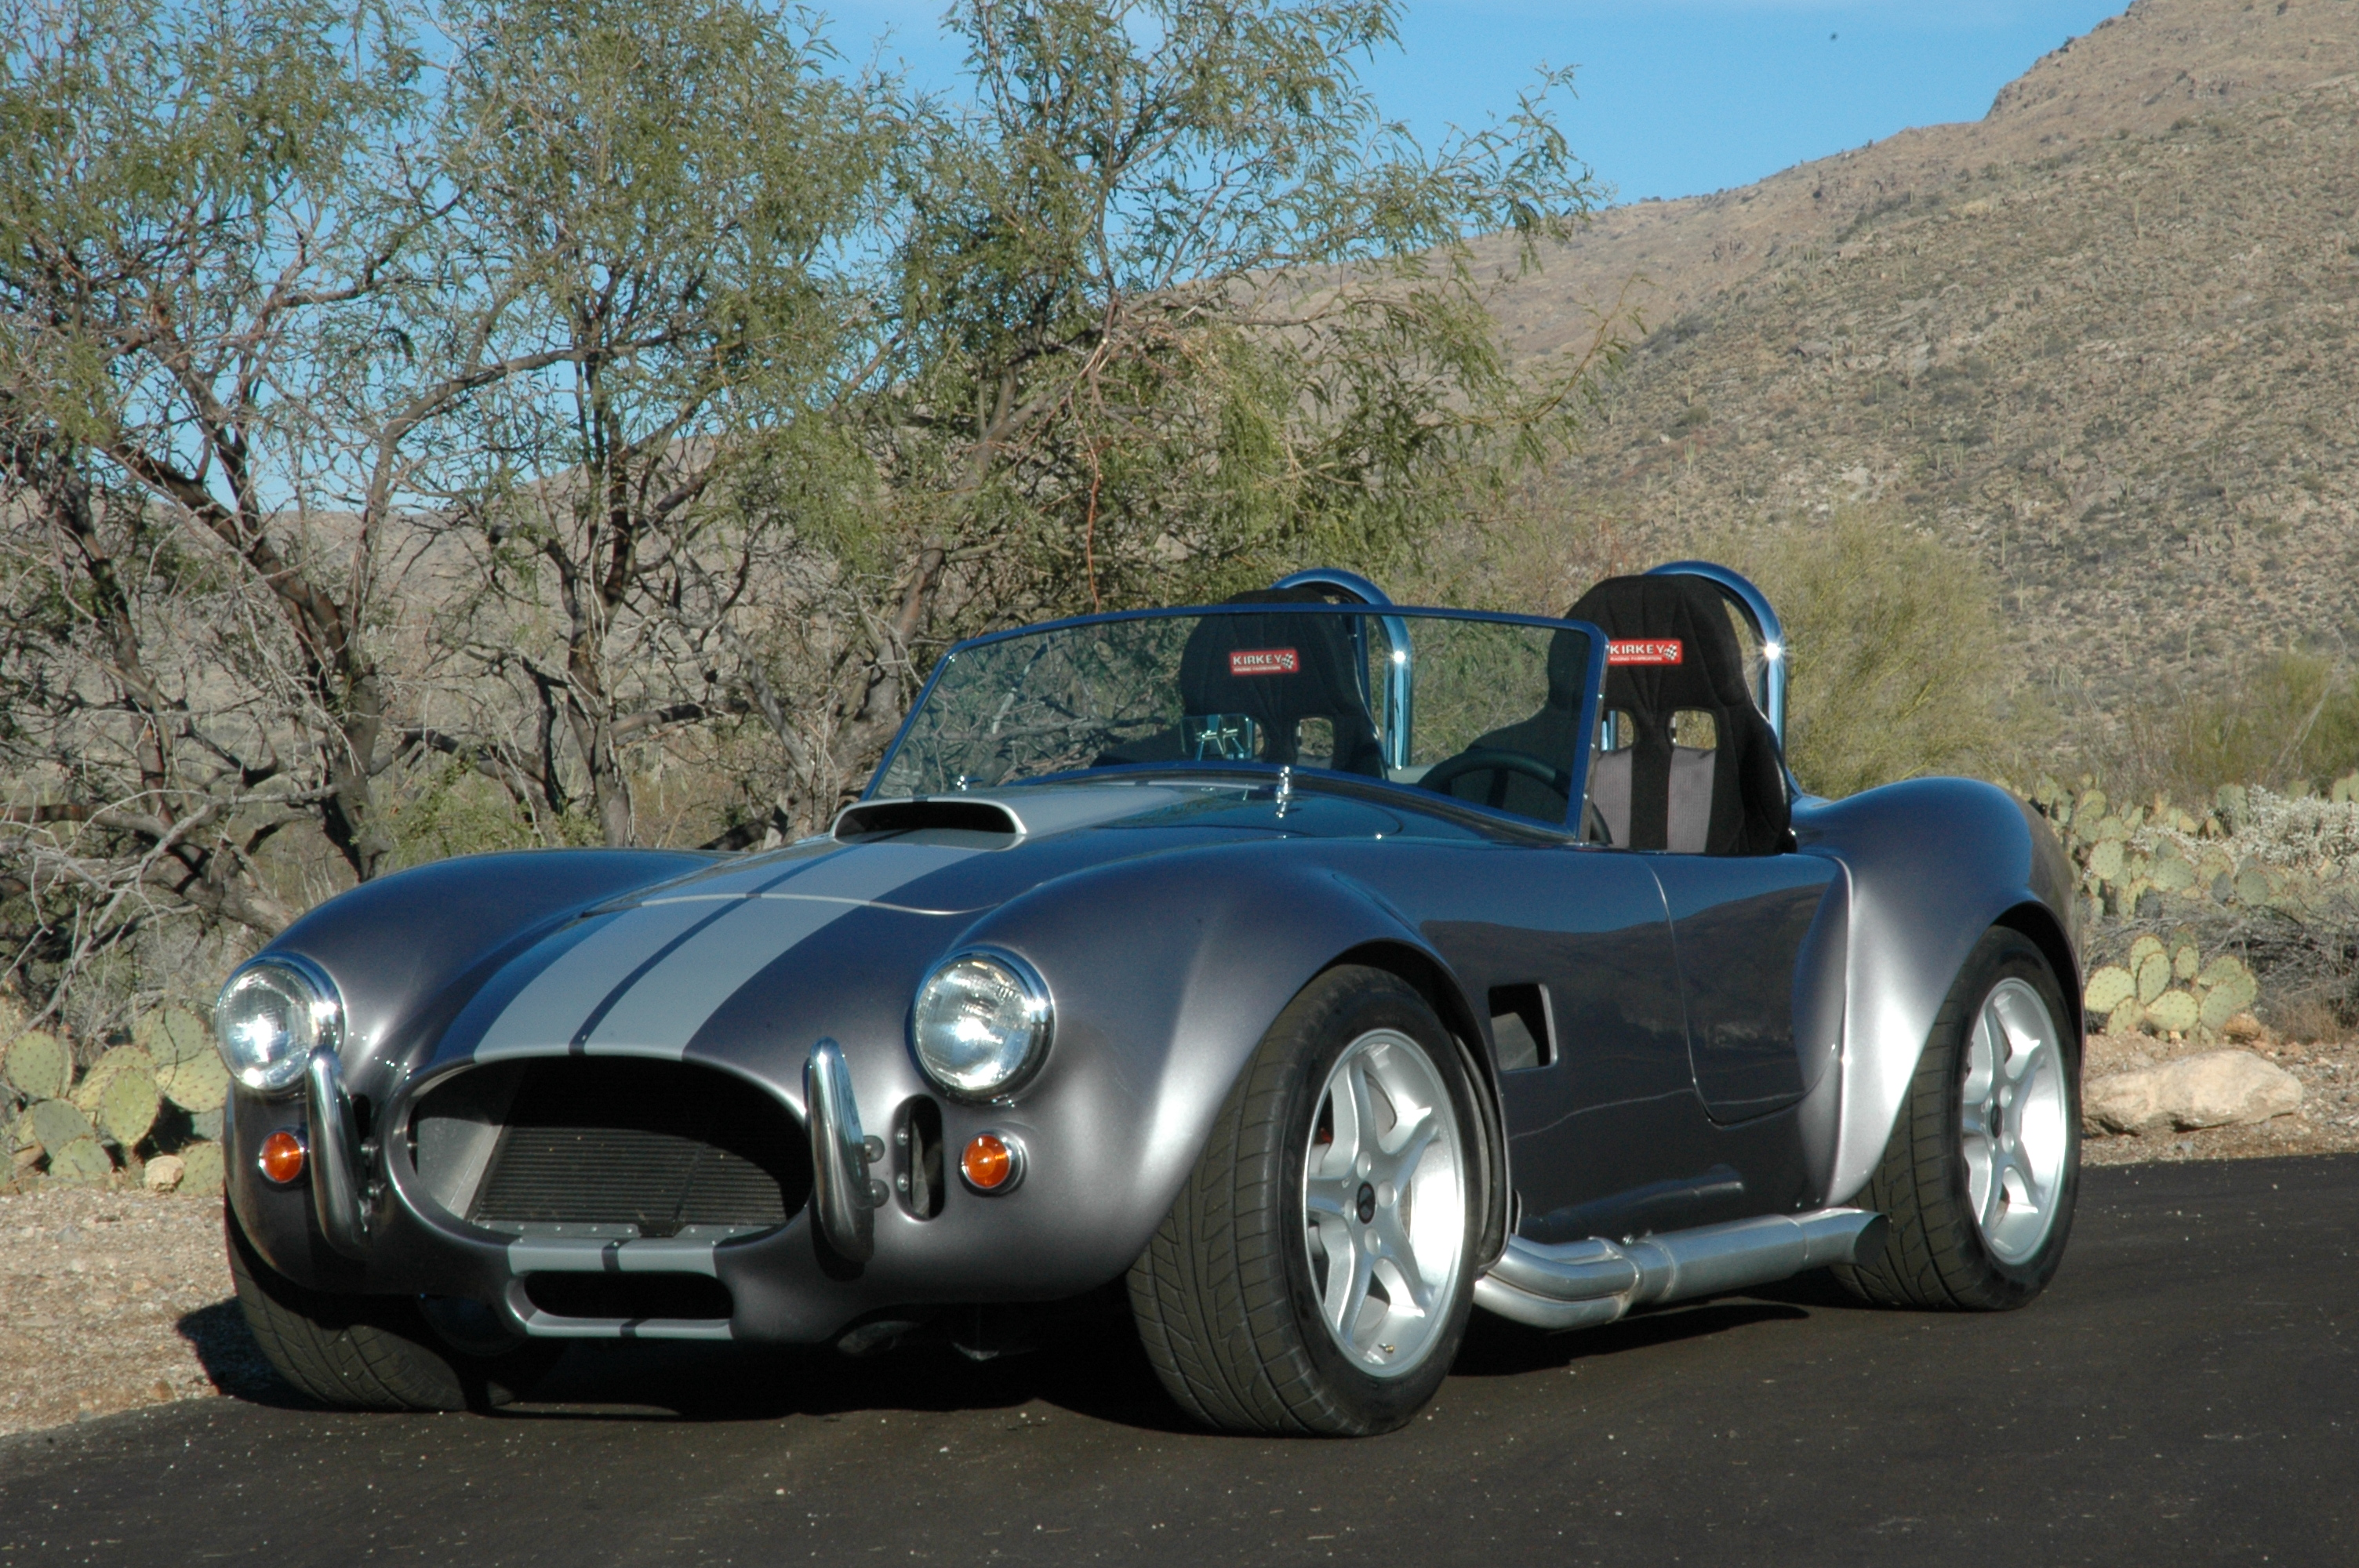 Shelby Ac Cobra Wallpaper Wallpapersafari